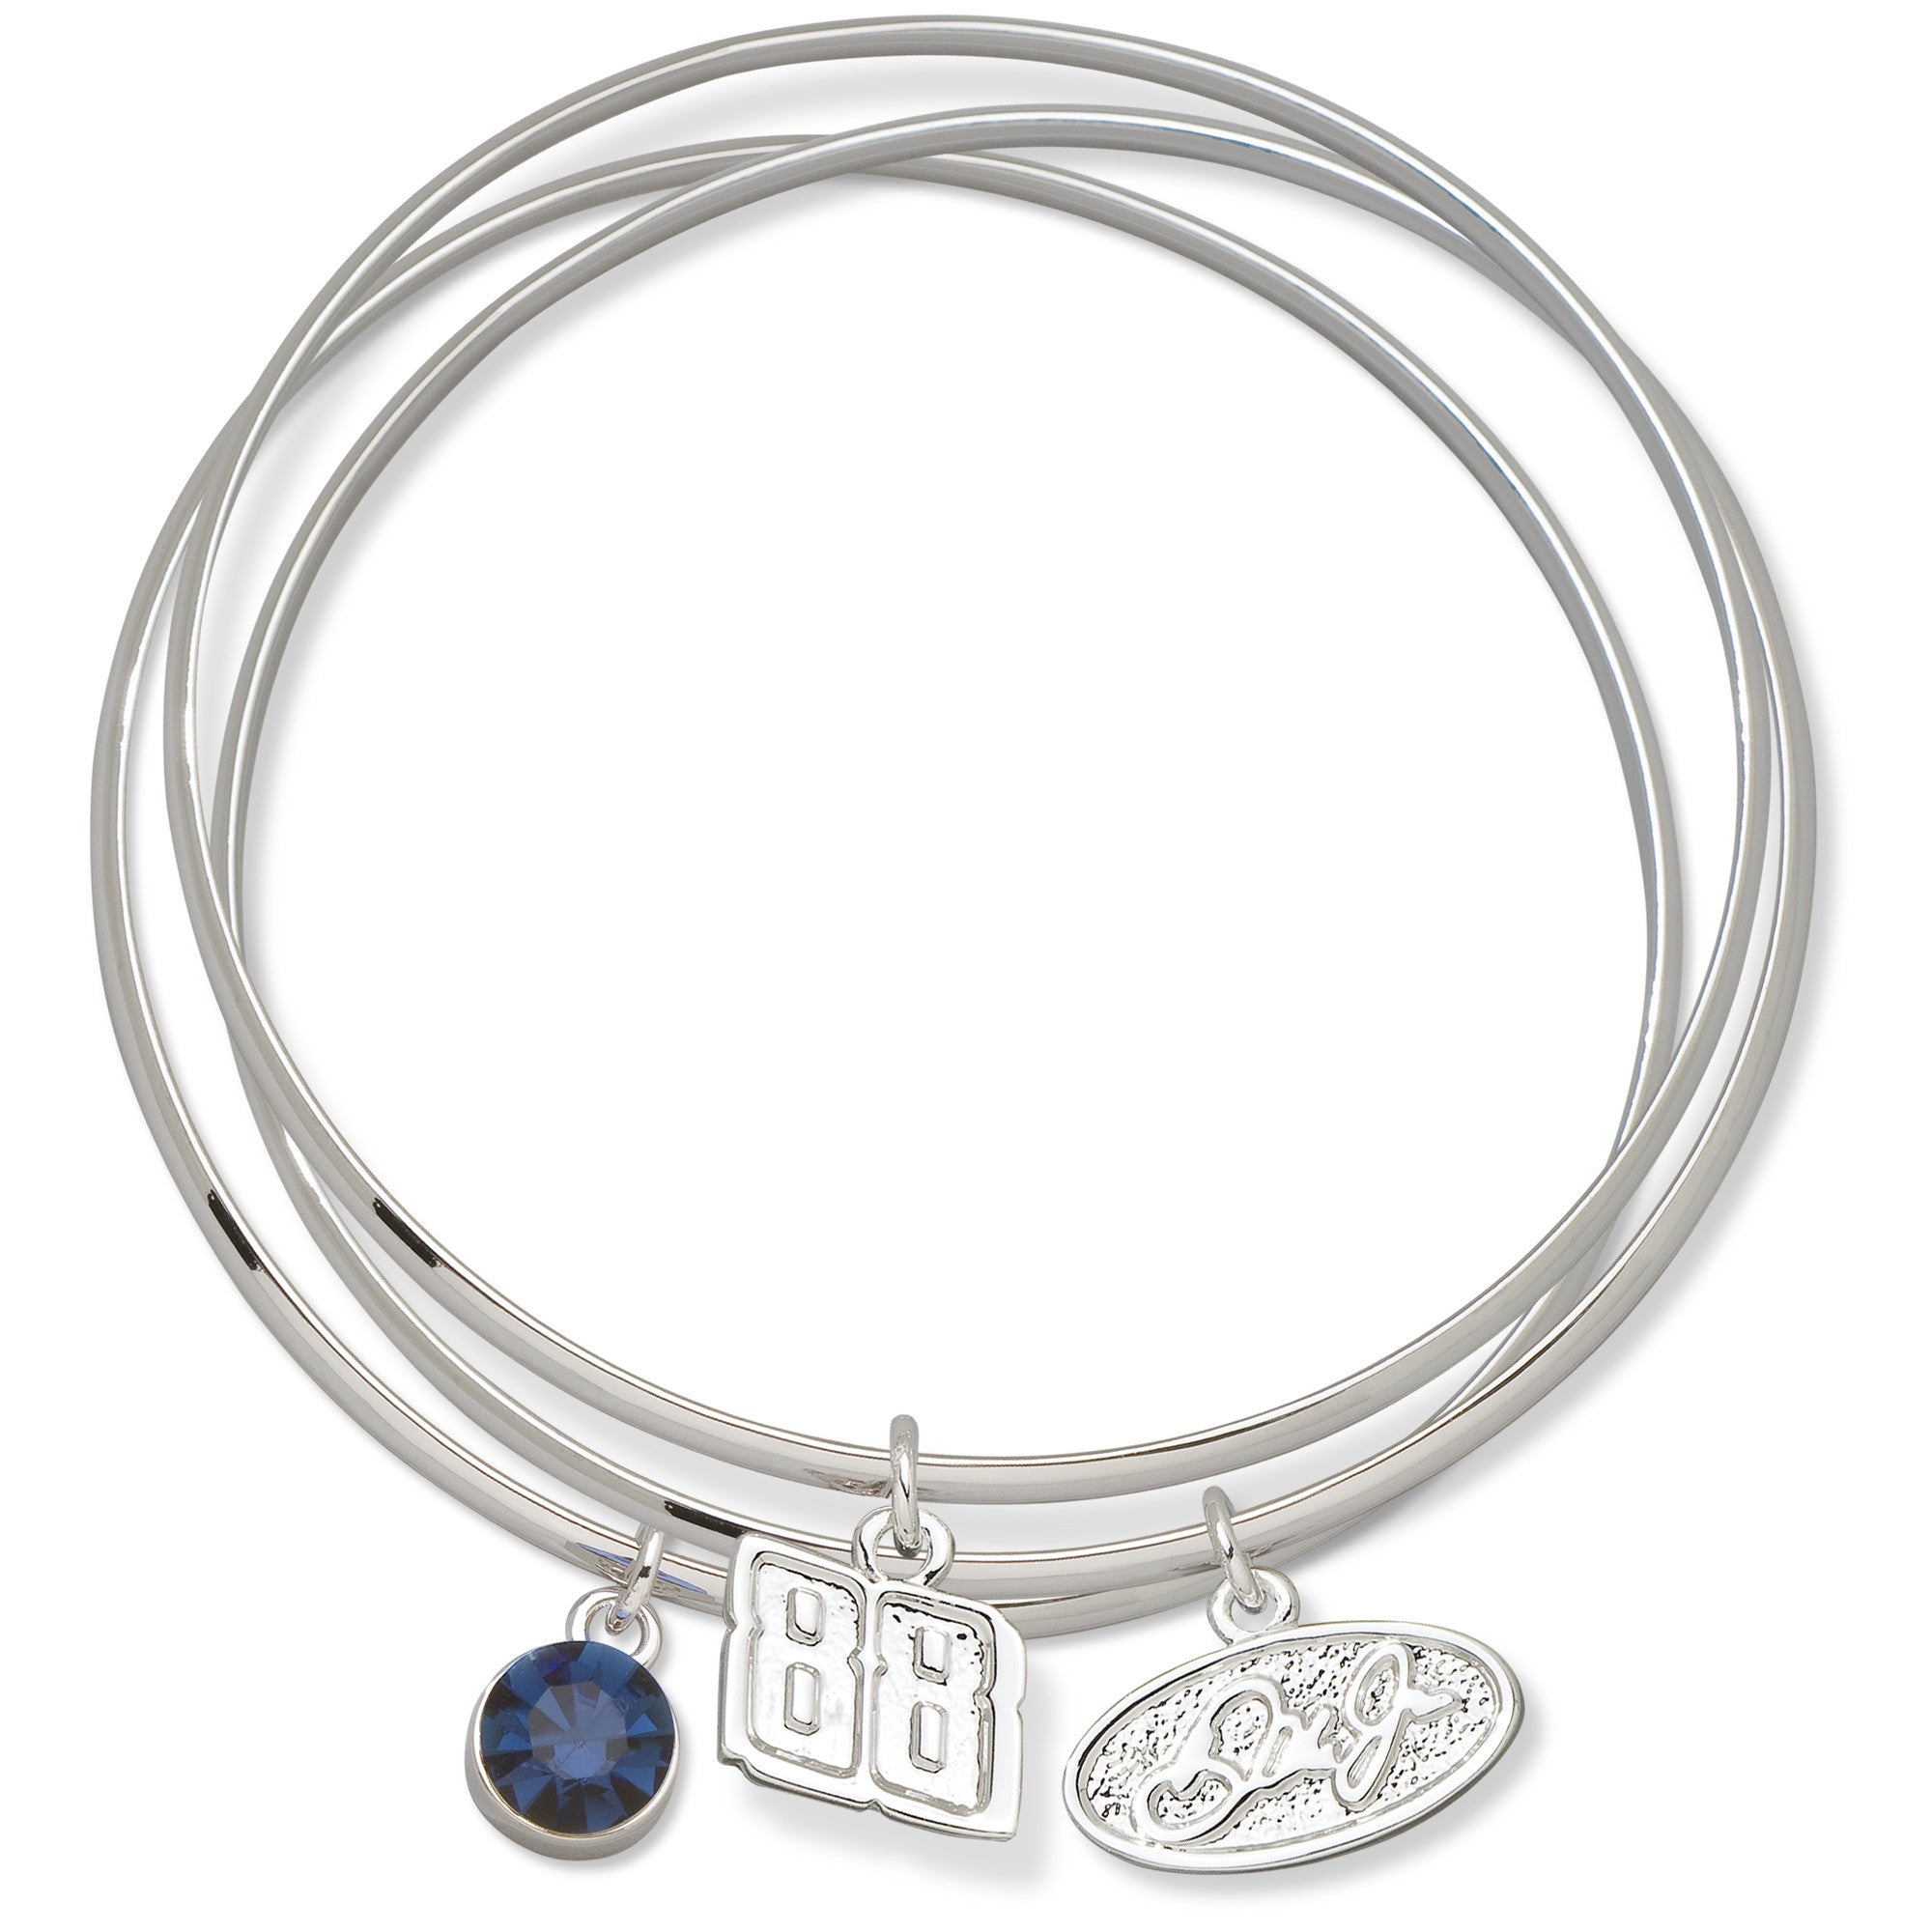 Dale Earnhardt Jr #88 Bangle